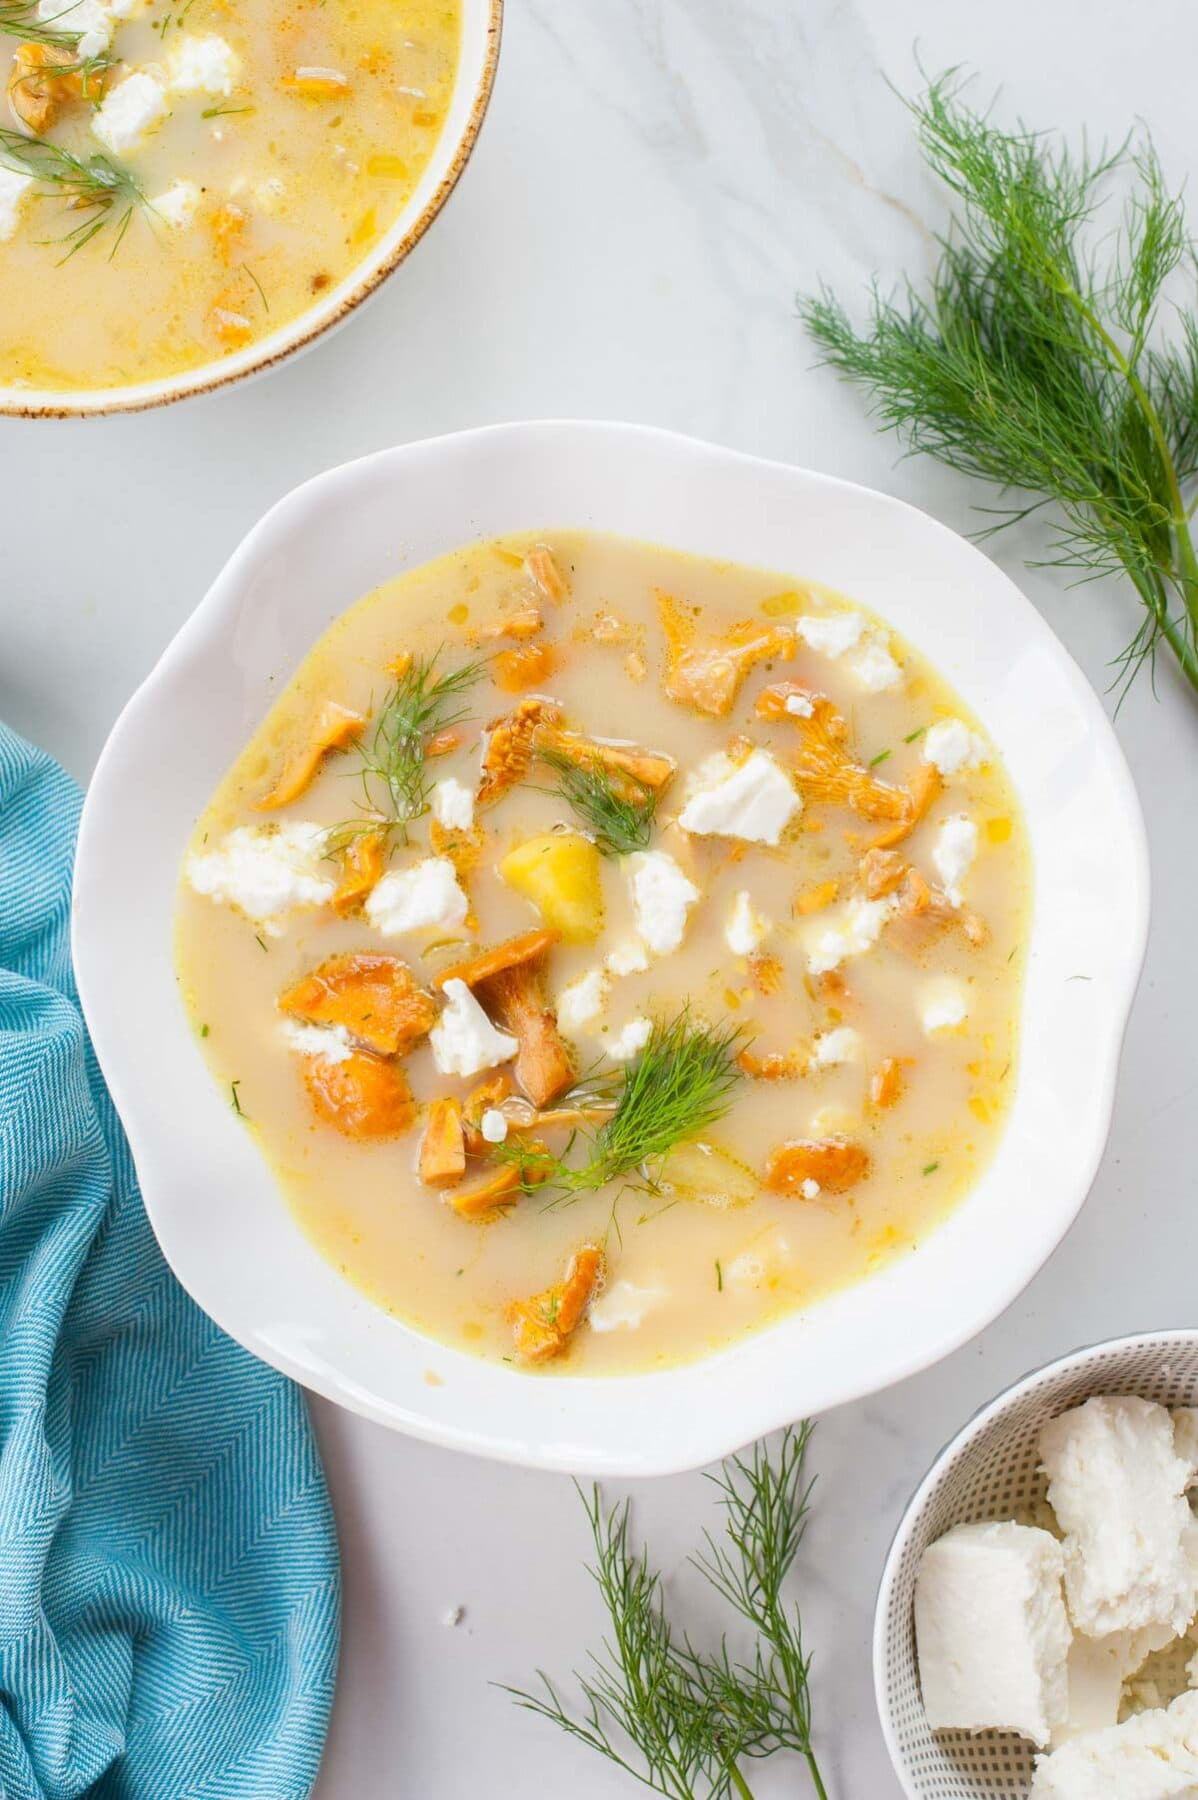 chanterelle soup in a white bowl, dill and a blue kitchen towel in the background